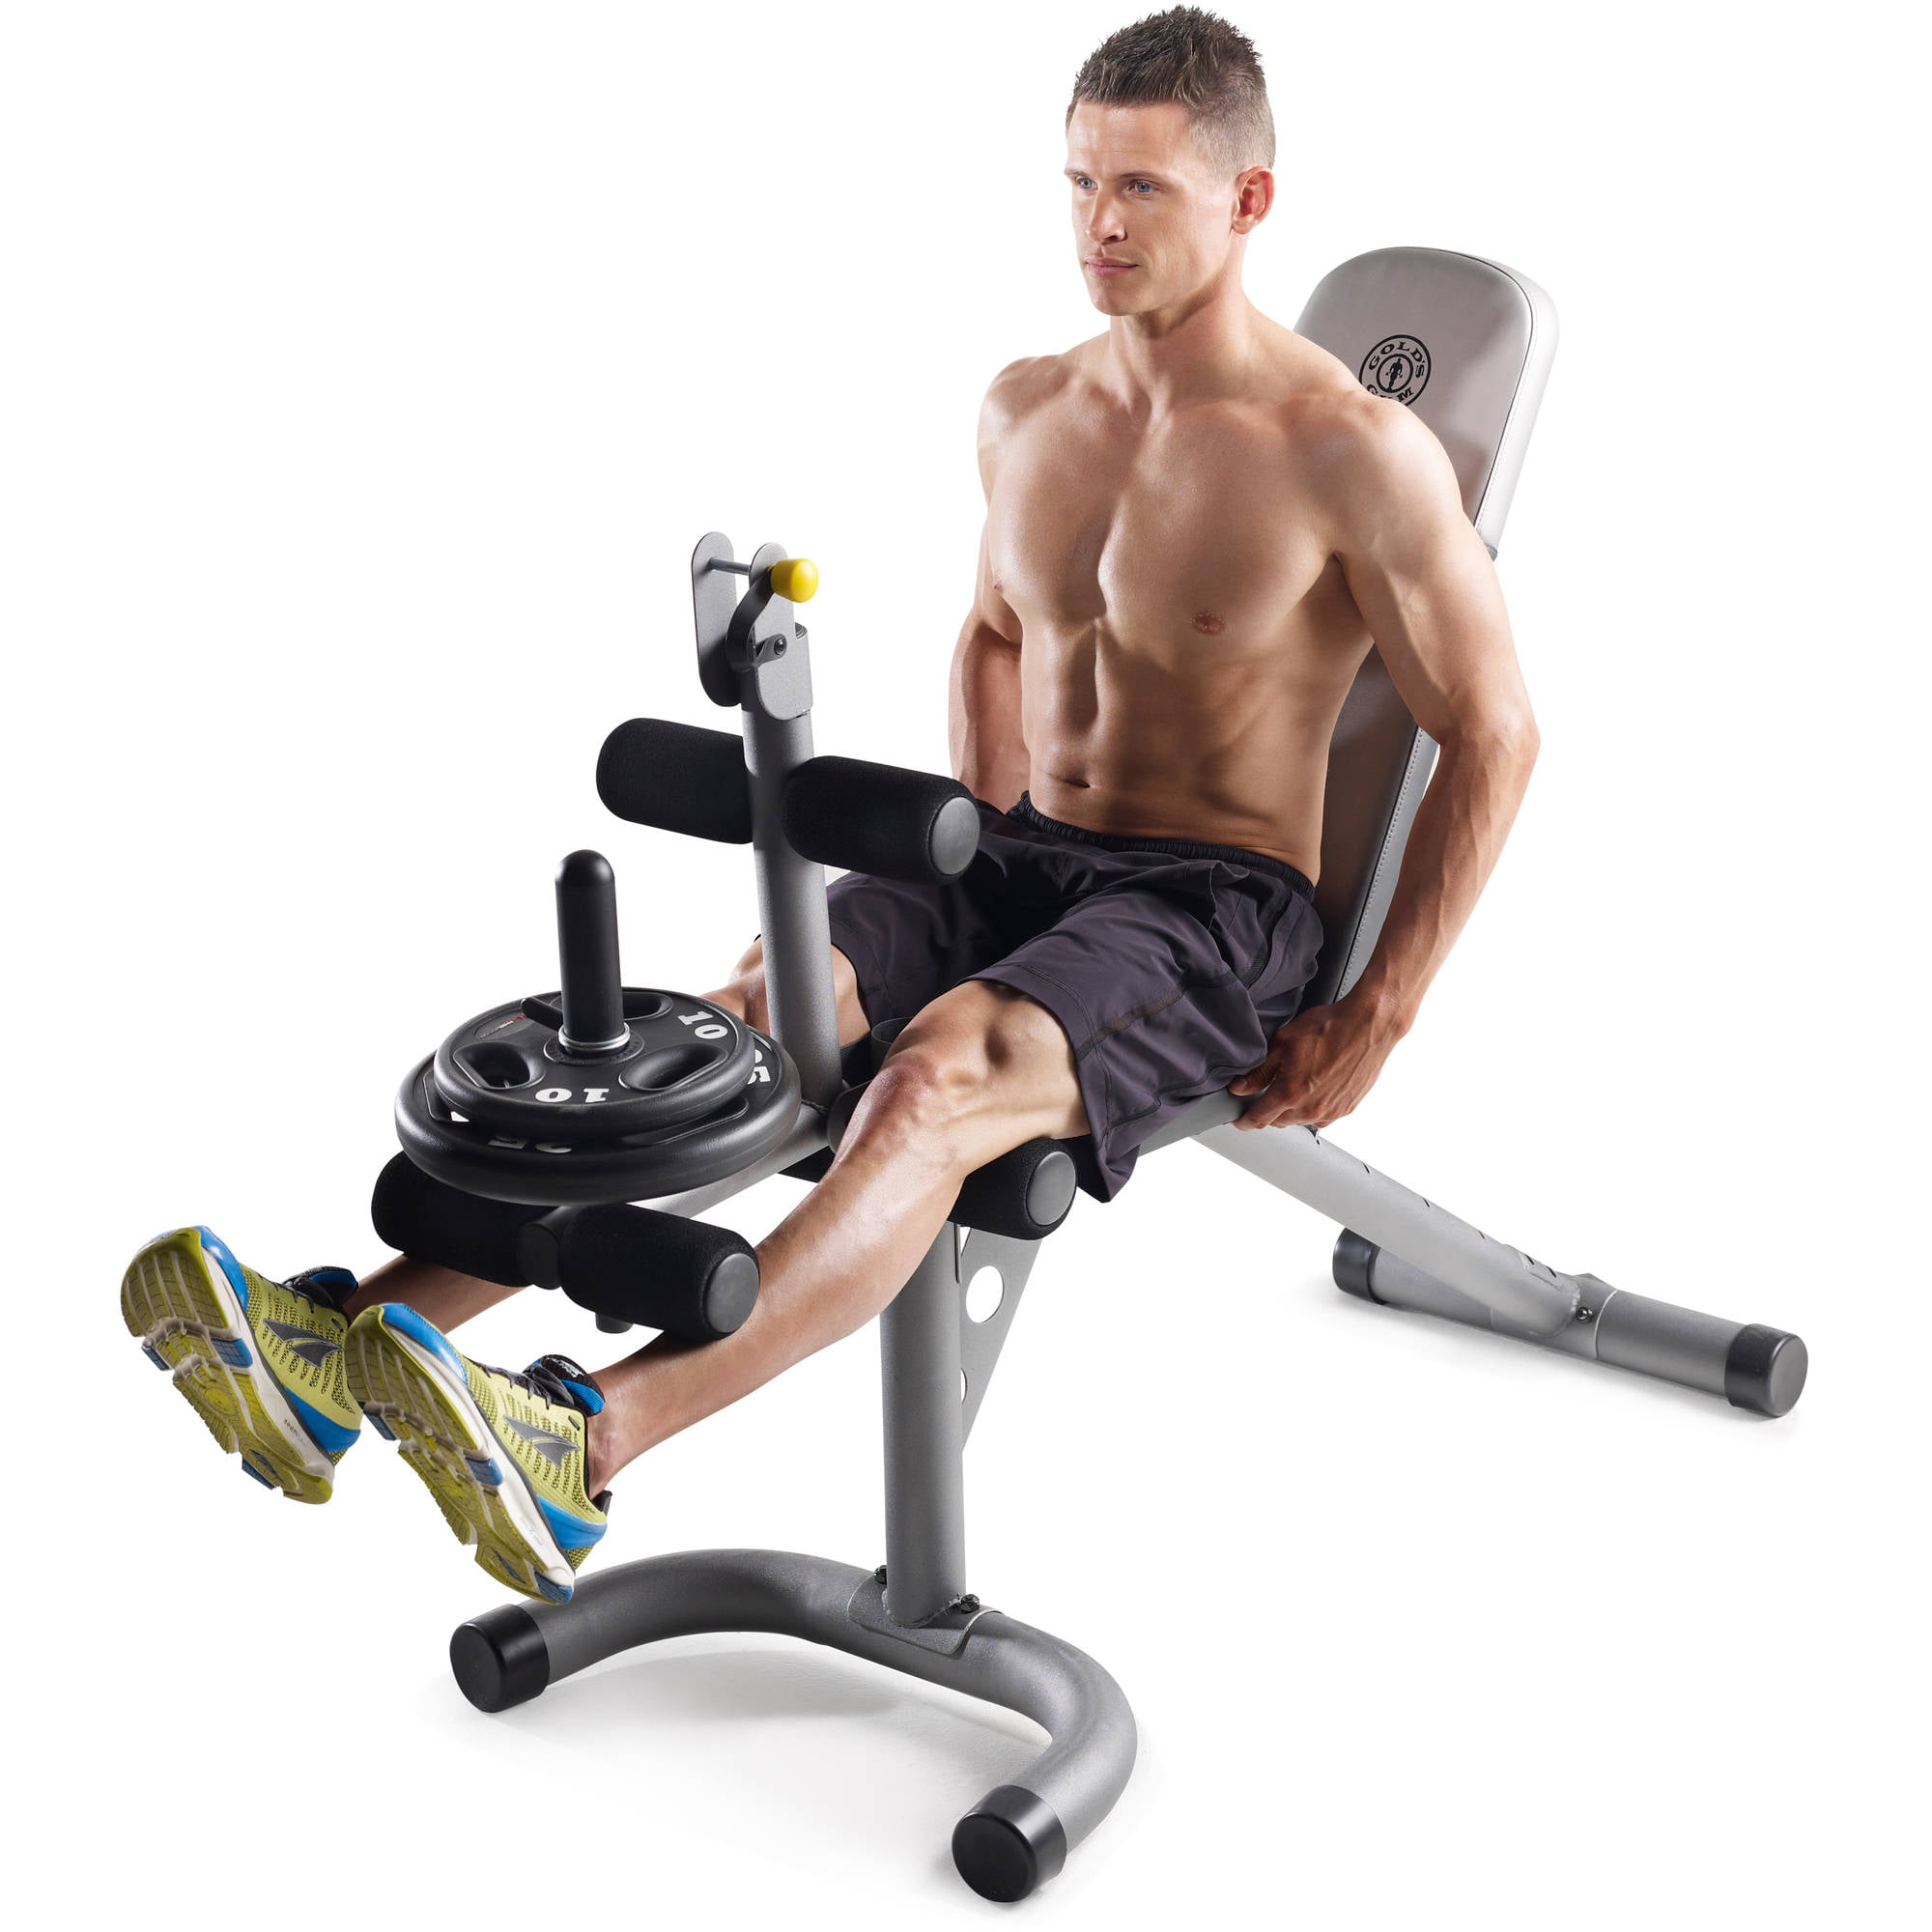 Exercise Fitness: Home Gym System Equipment Fitness Workout Bench Exercise